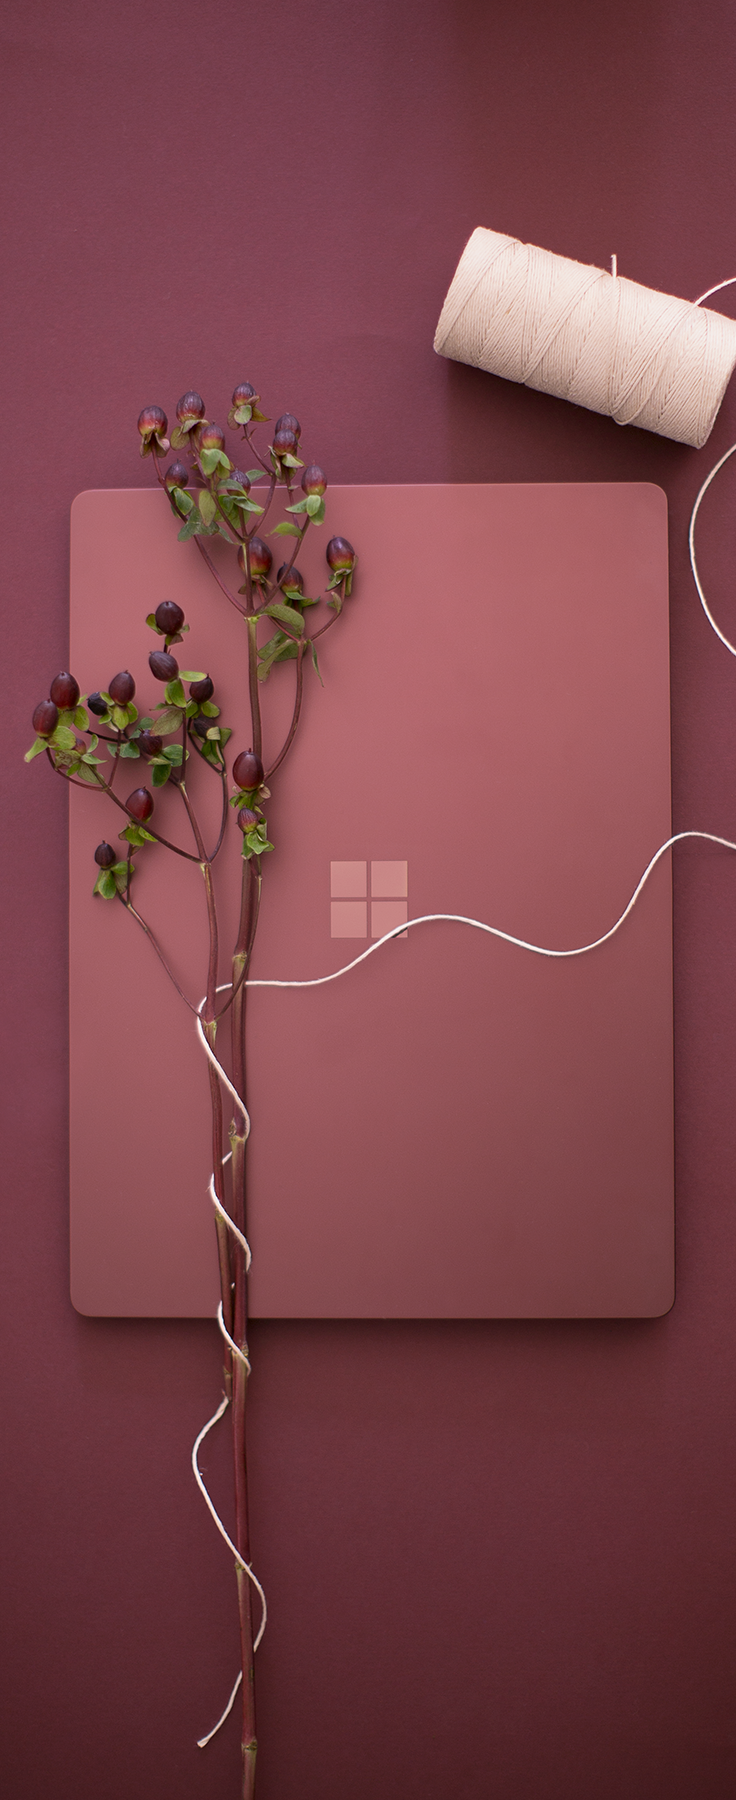 Color can calm, excite, and inspire. Choose the color that speaks to you with Surface Laptop.